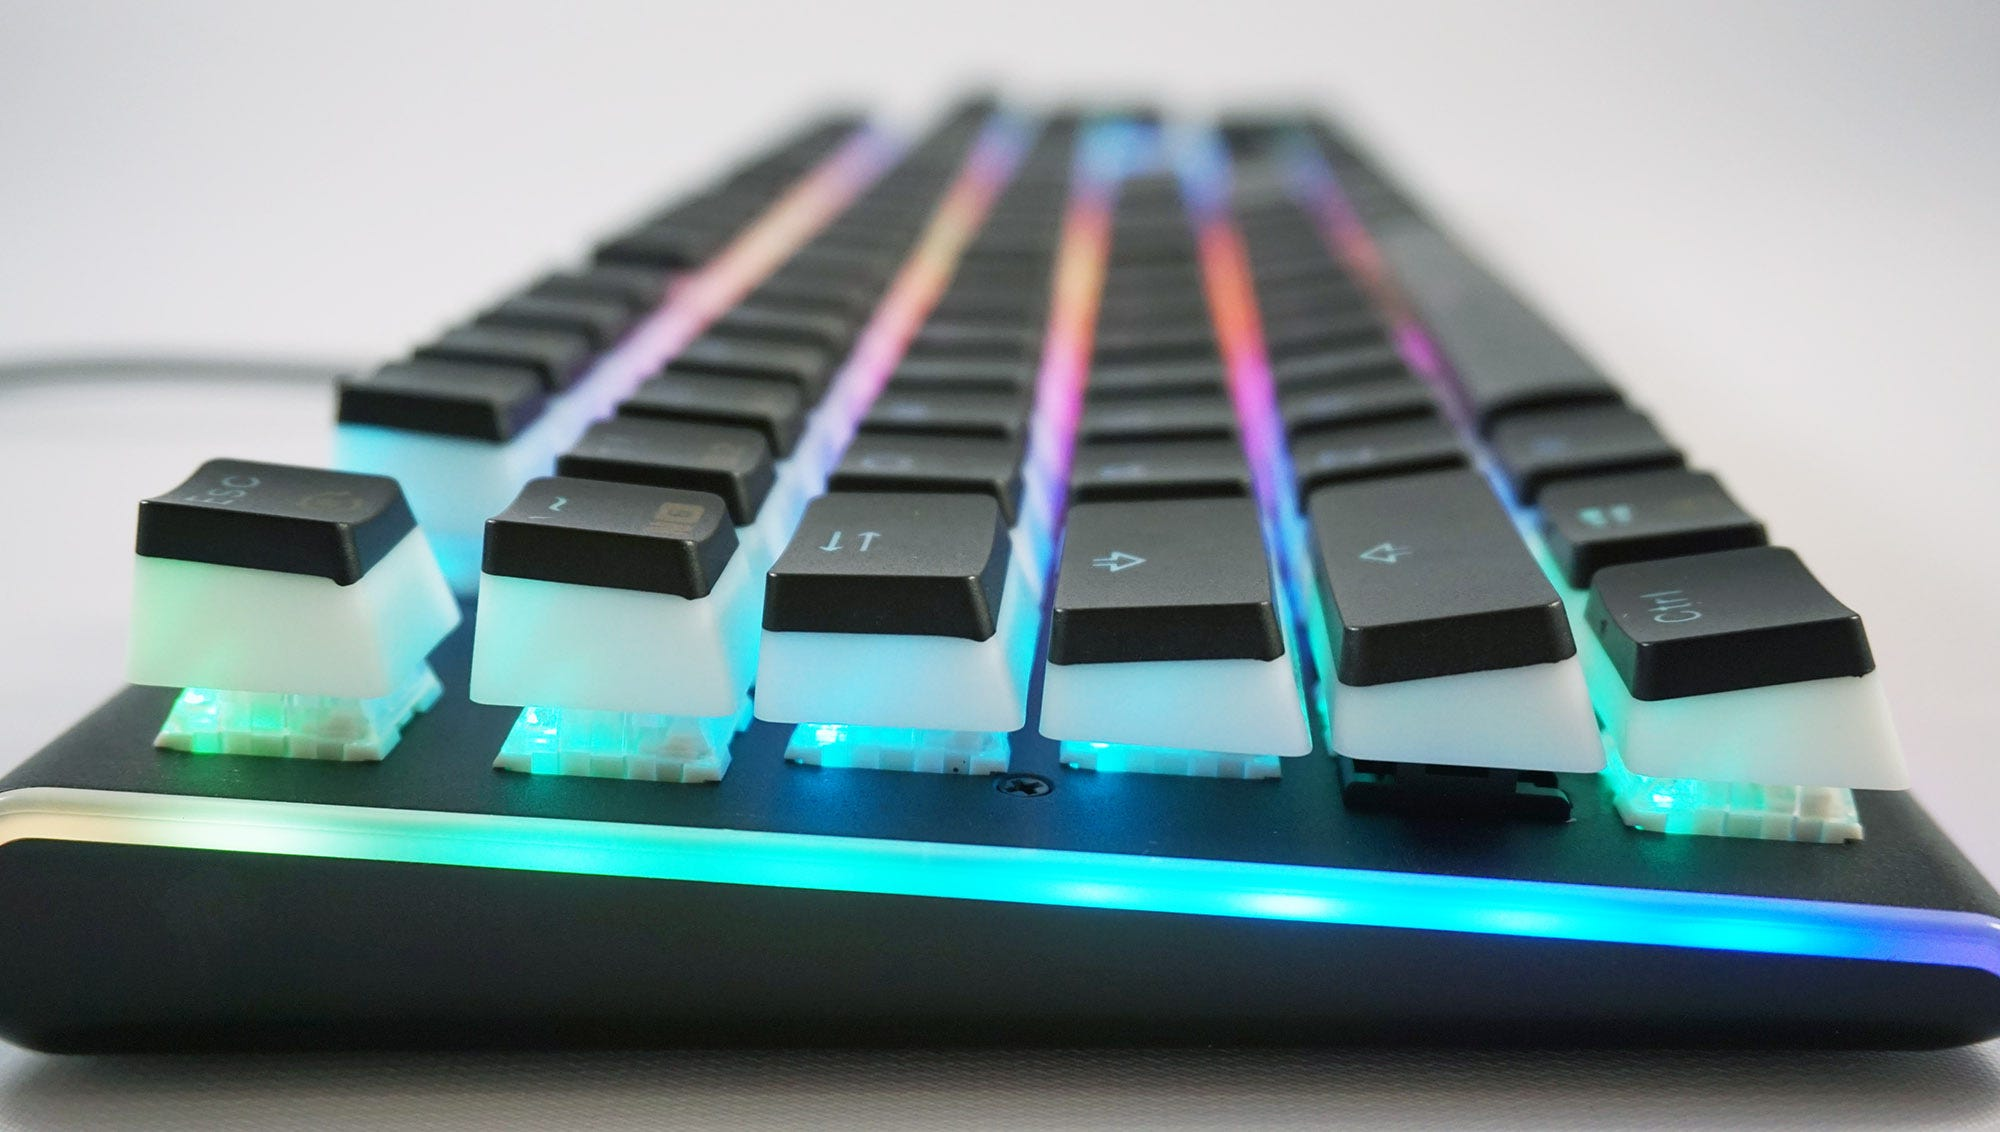 The Impulse is a solid mid-range keyboard and an excellent value.